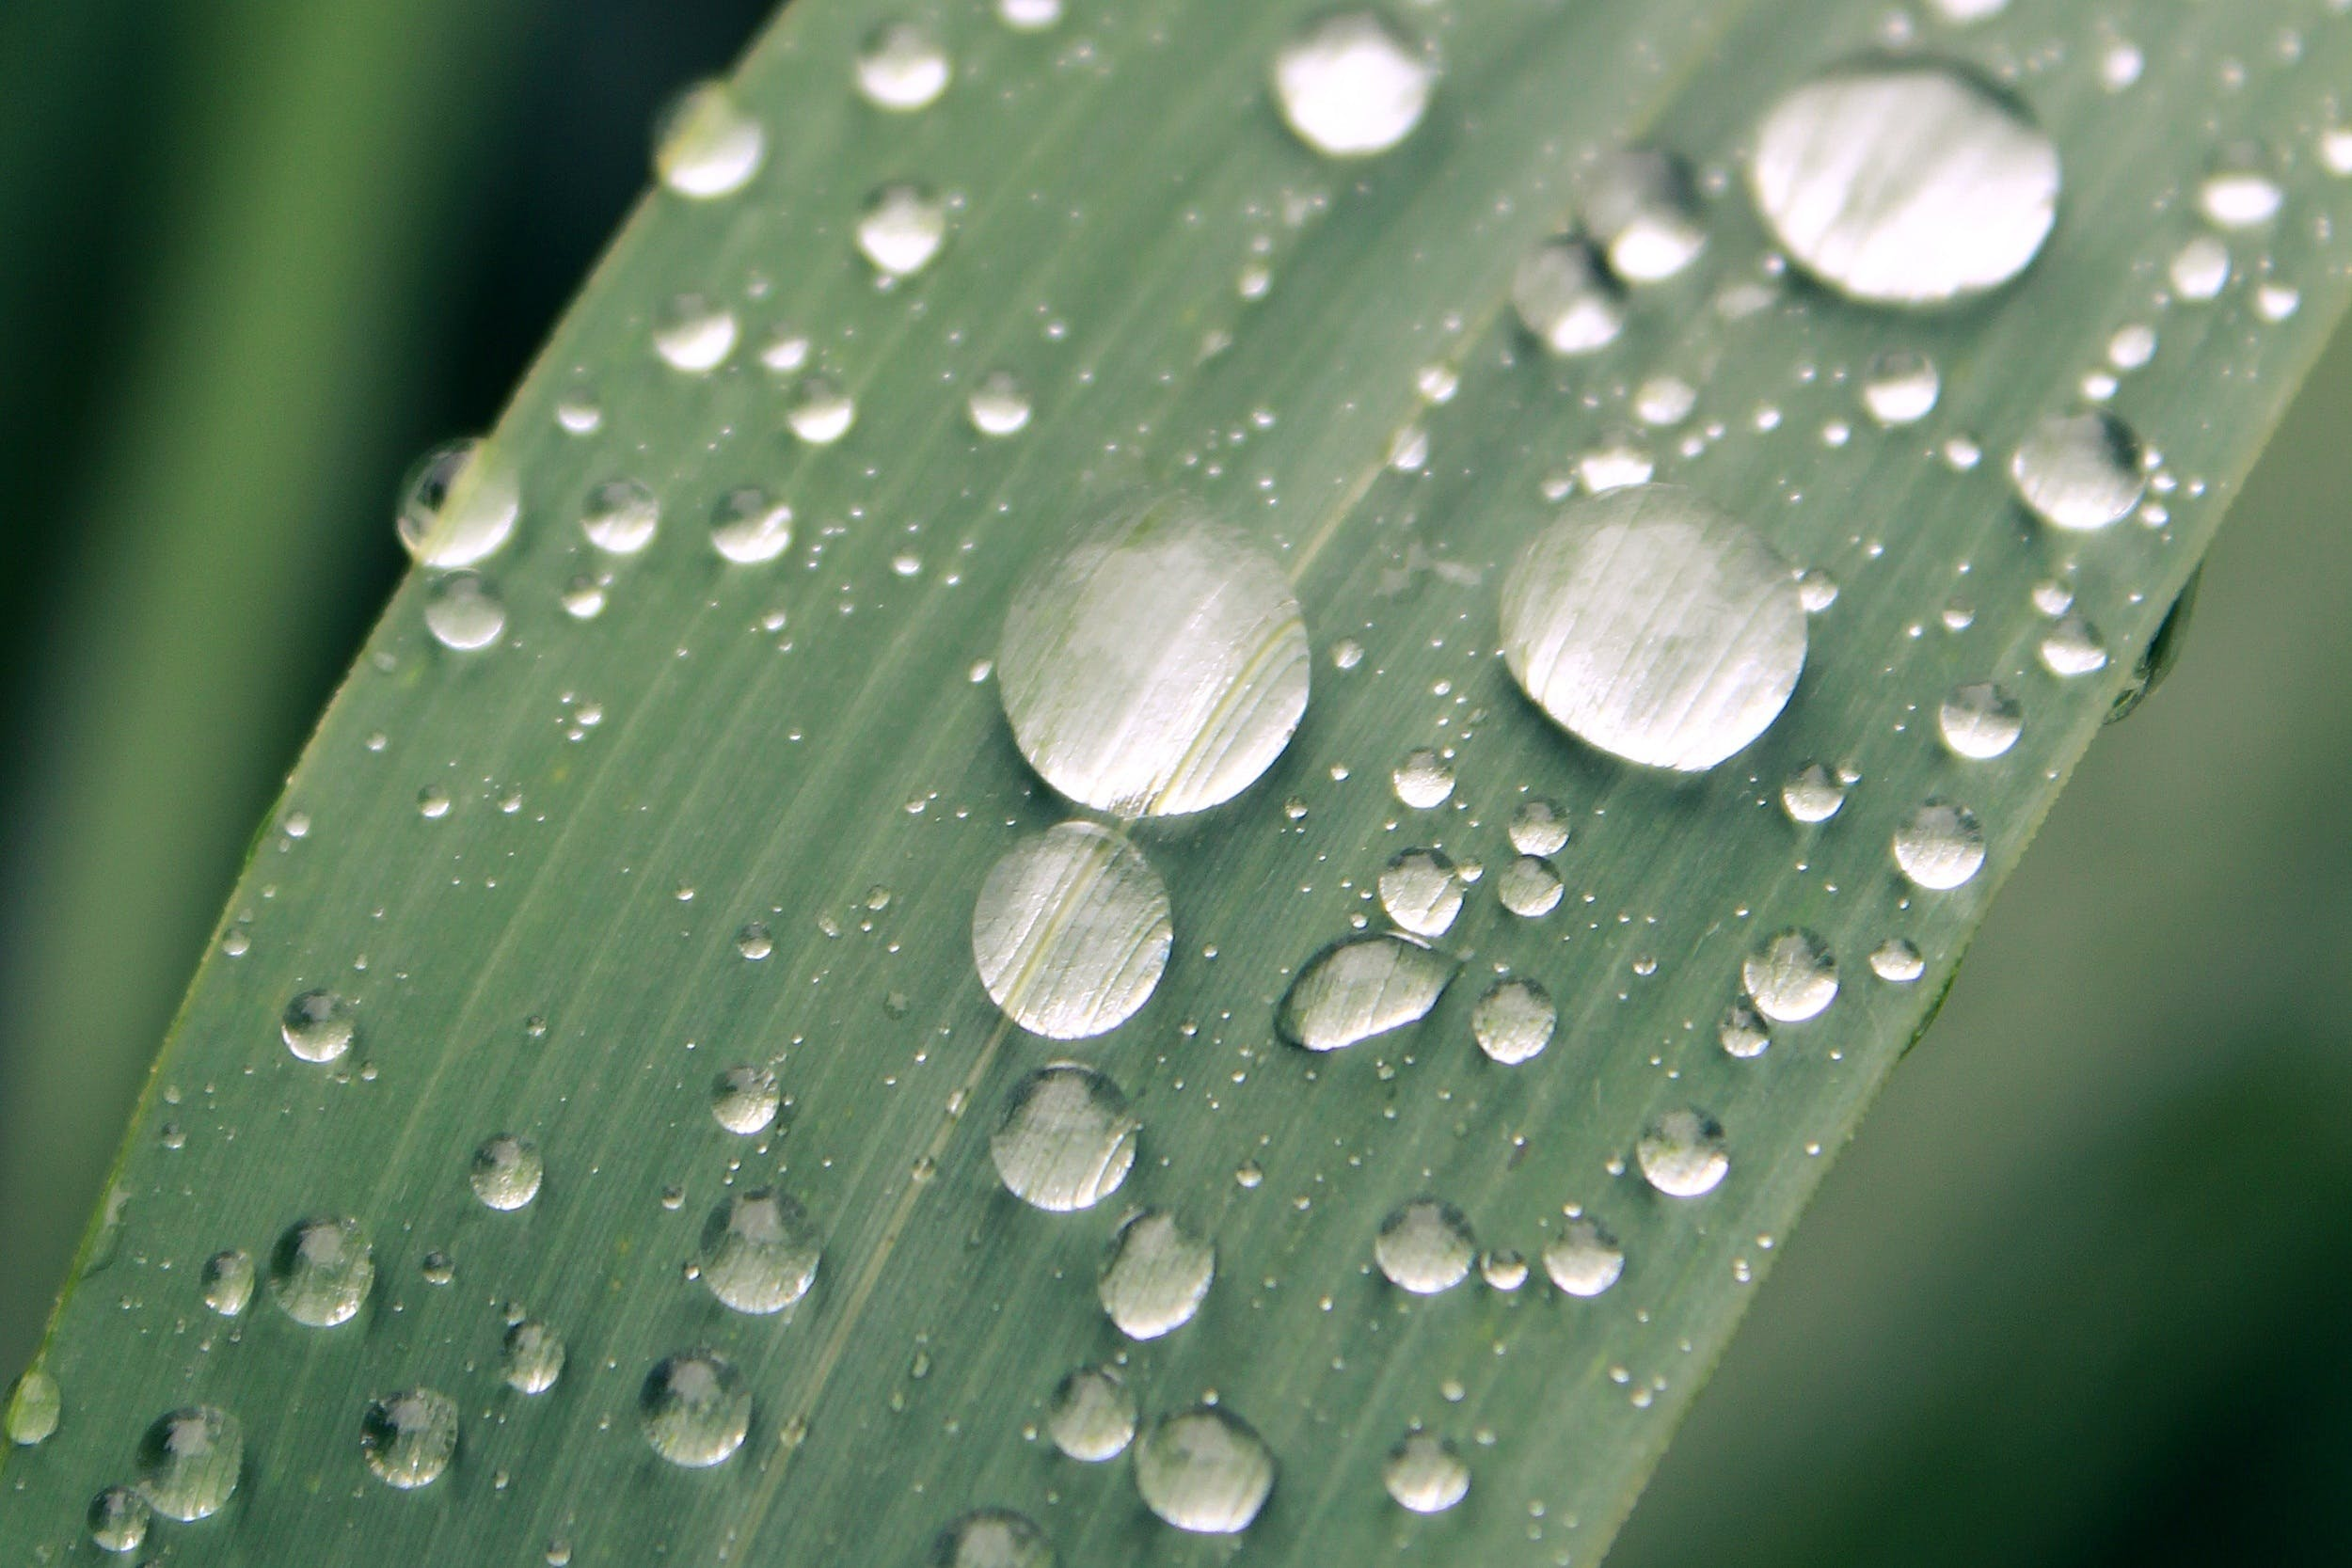 Macro Photography of Water Droplets on Leaf